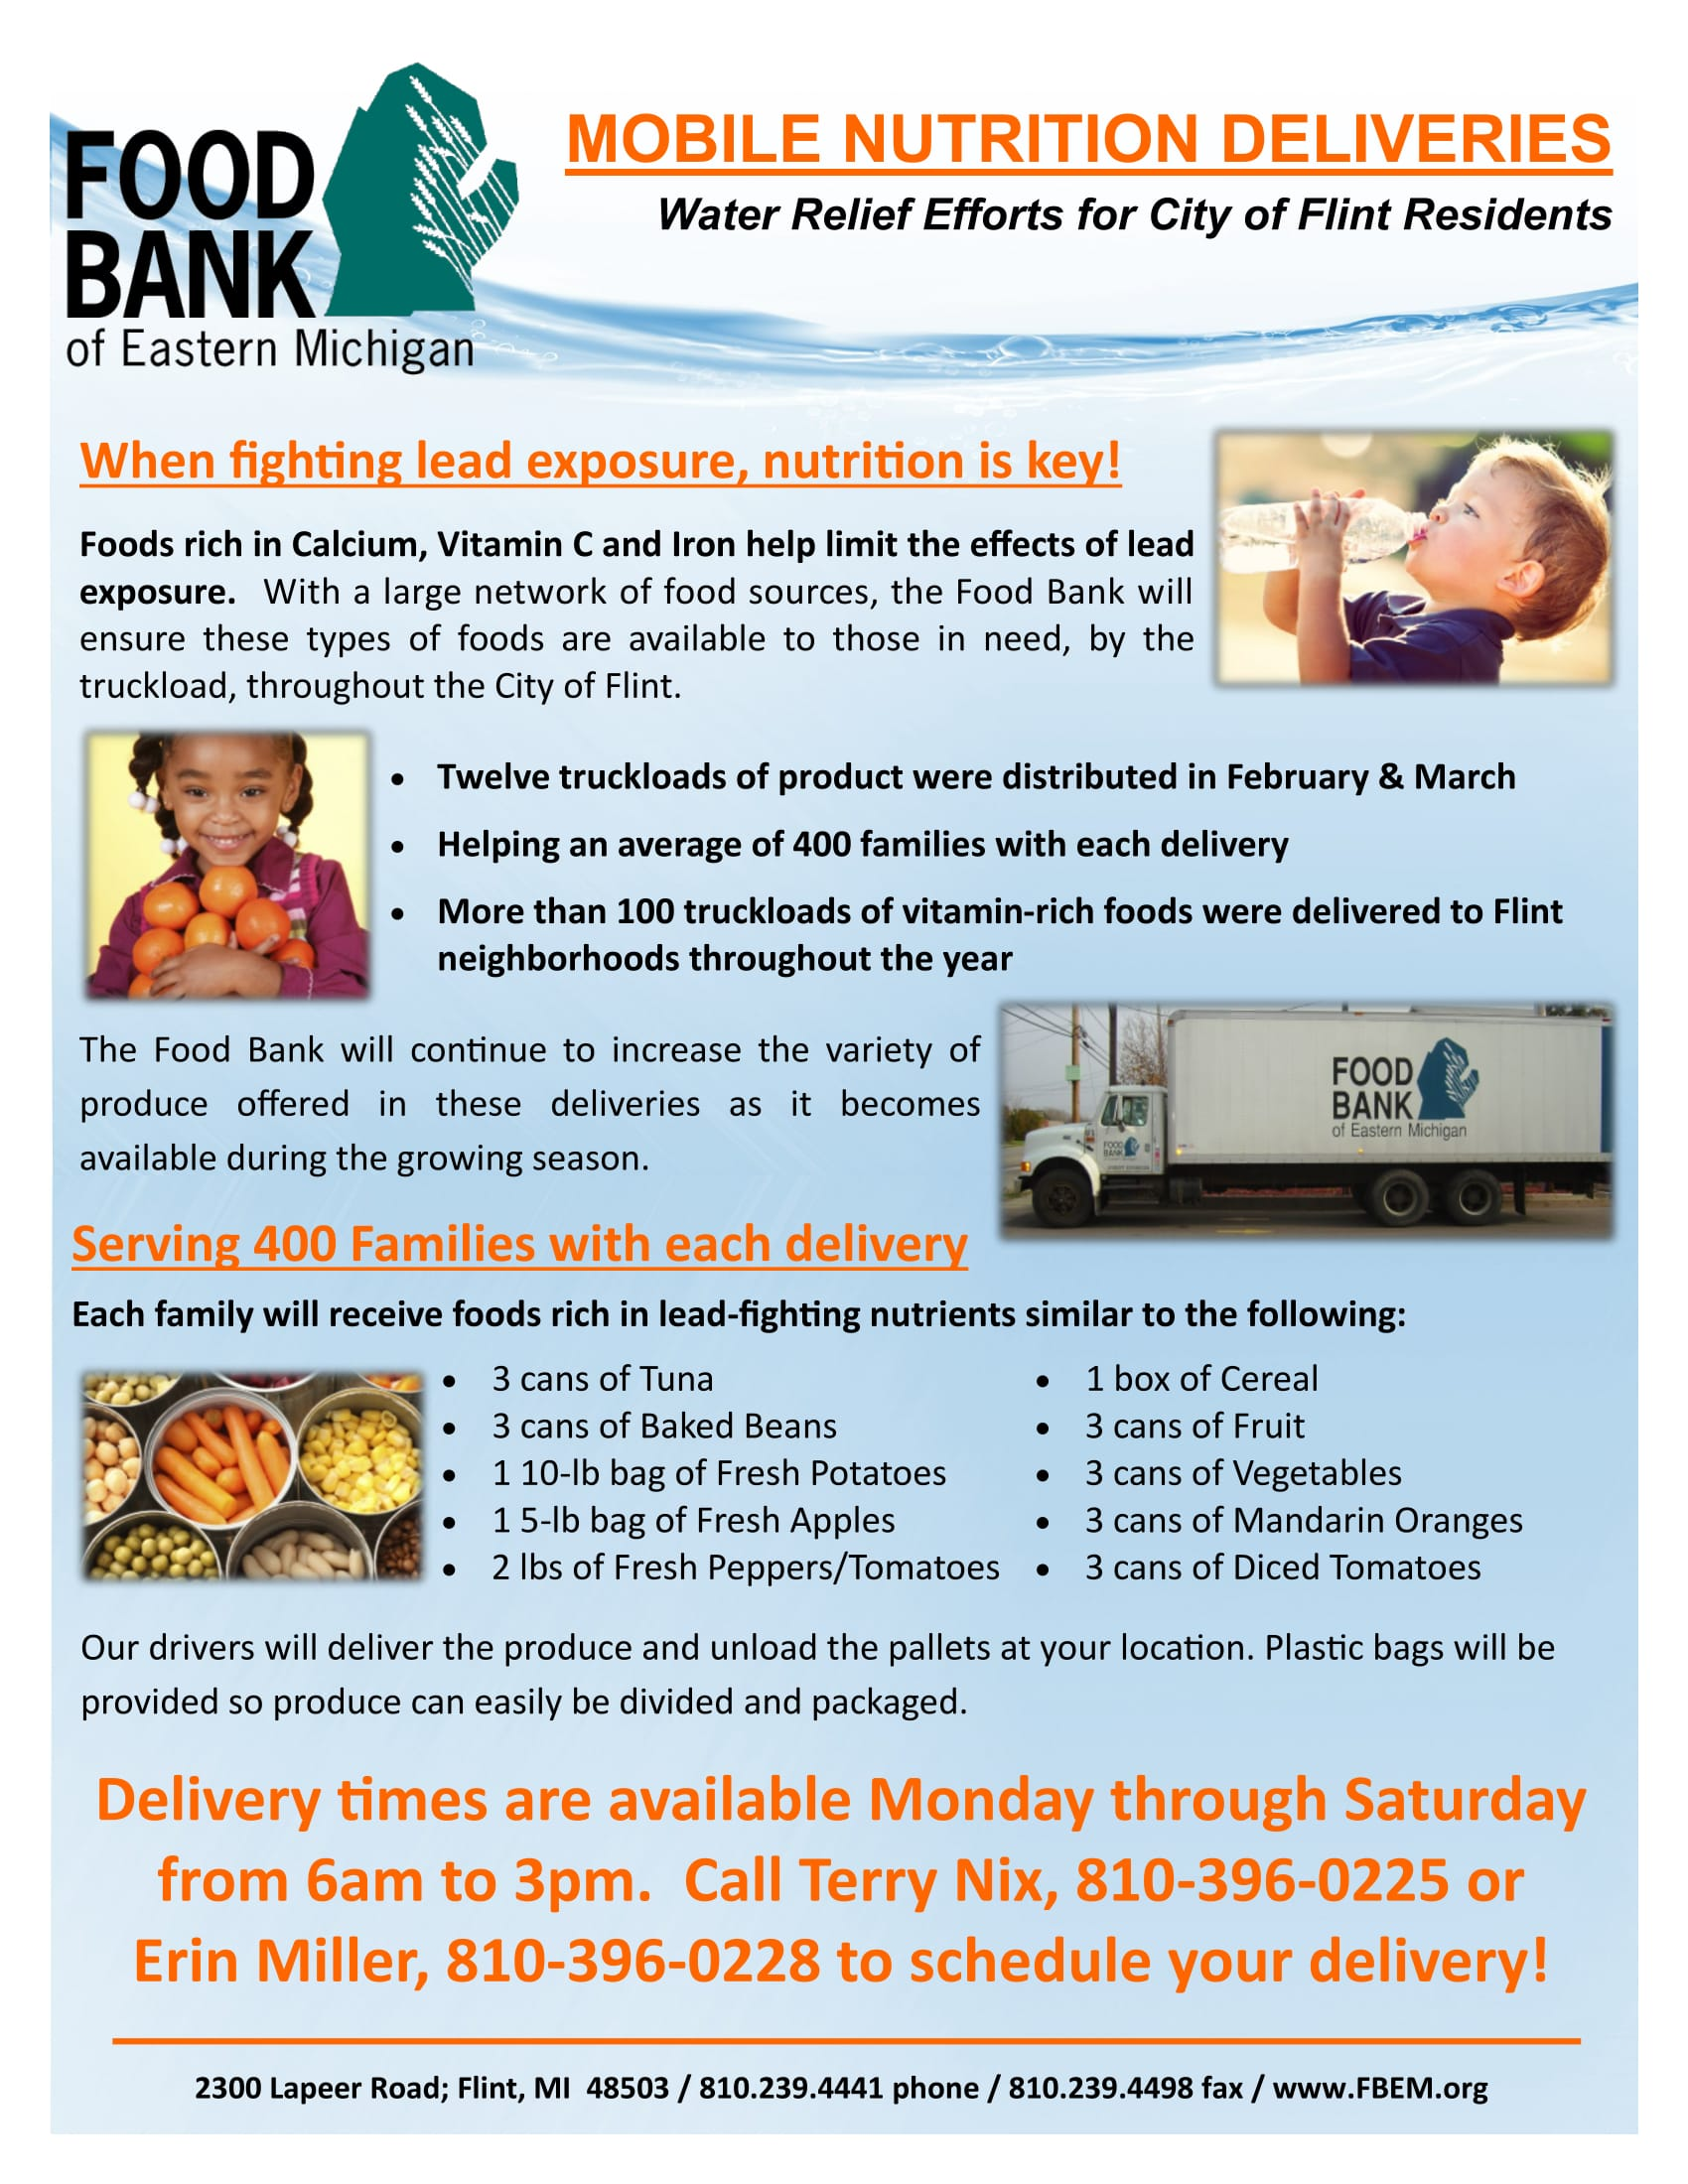 Food Bank of Eastern Michigan Mobile Nutrition Flier -